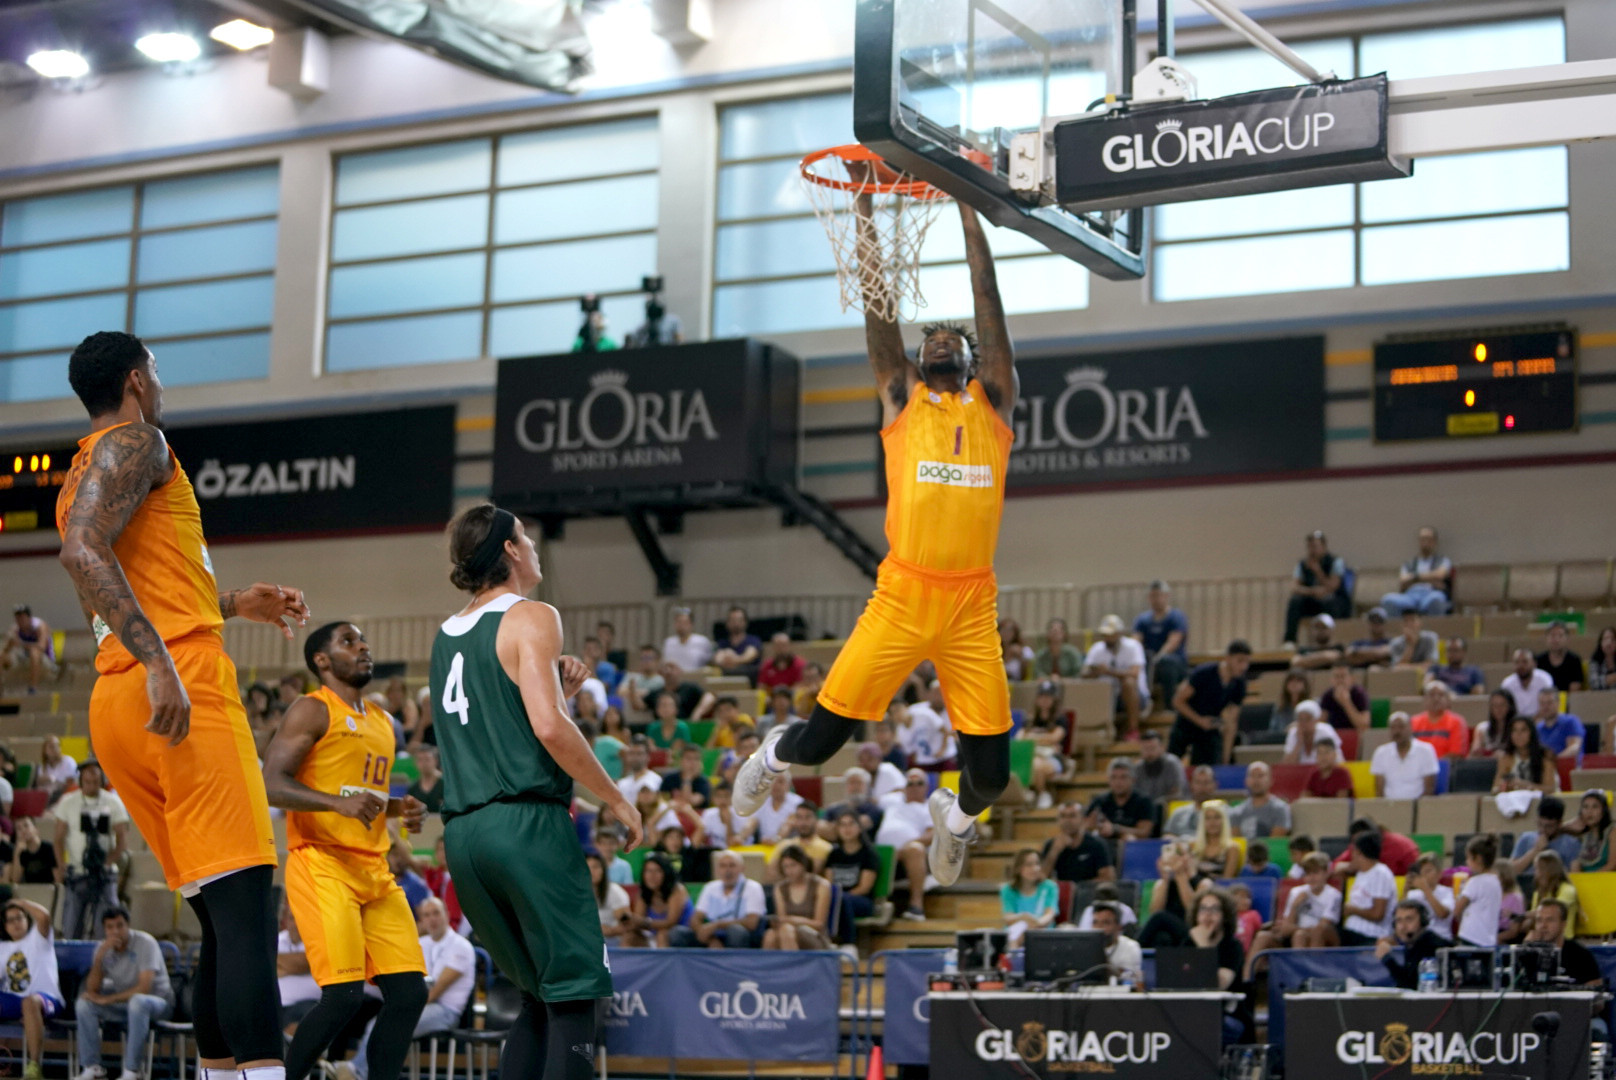 Greg Whittington of Galatasaray was ready to pounce for this rebound ©GSA